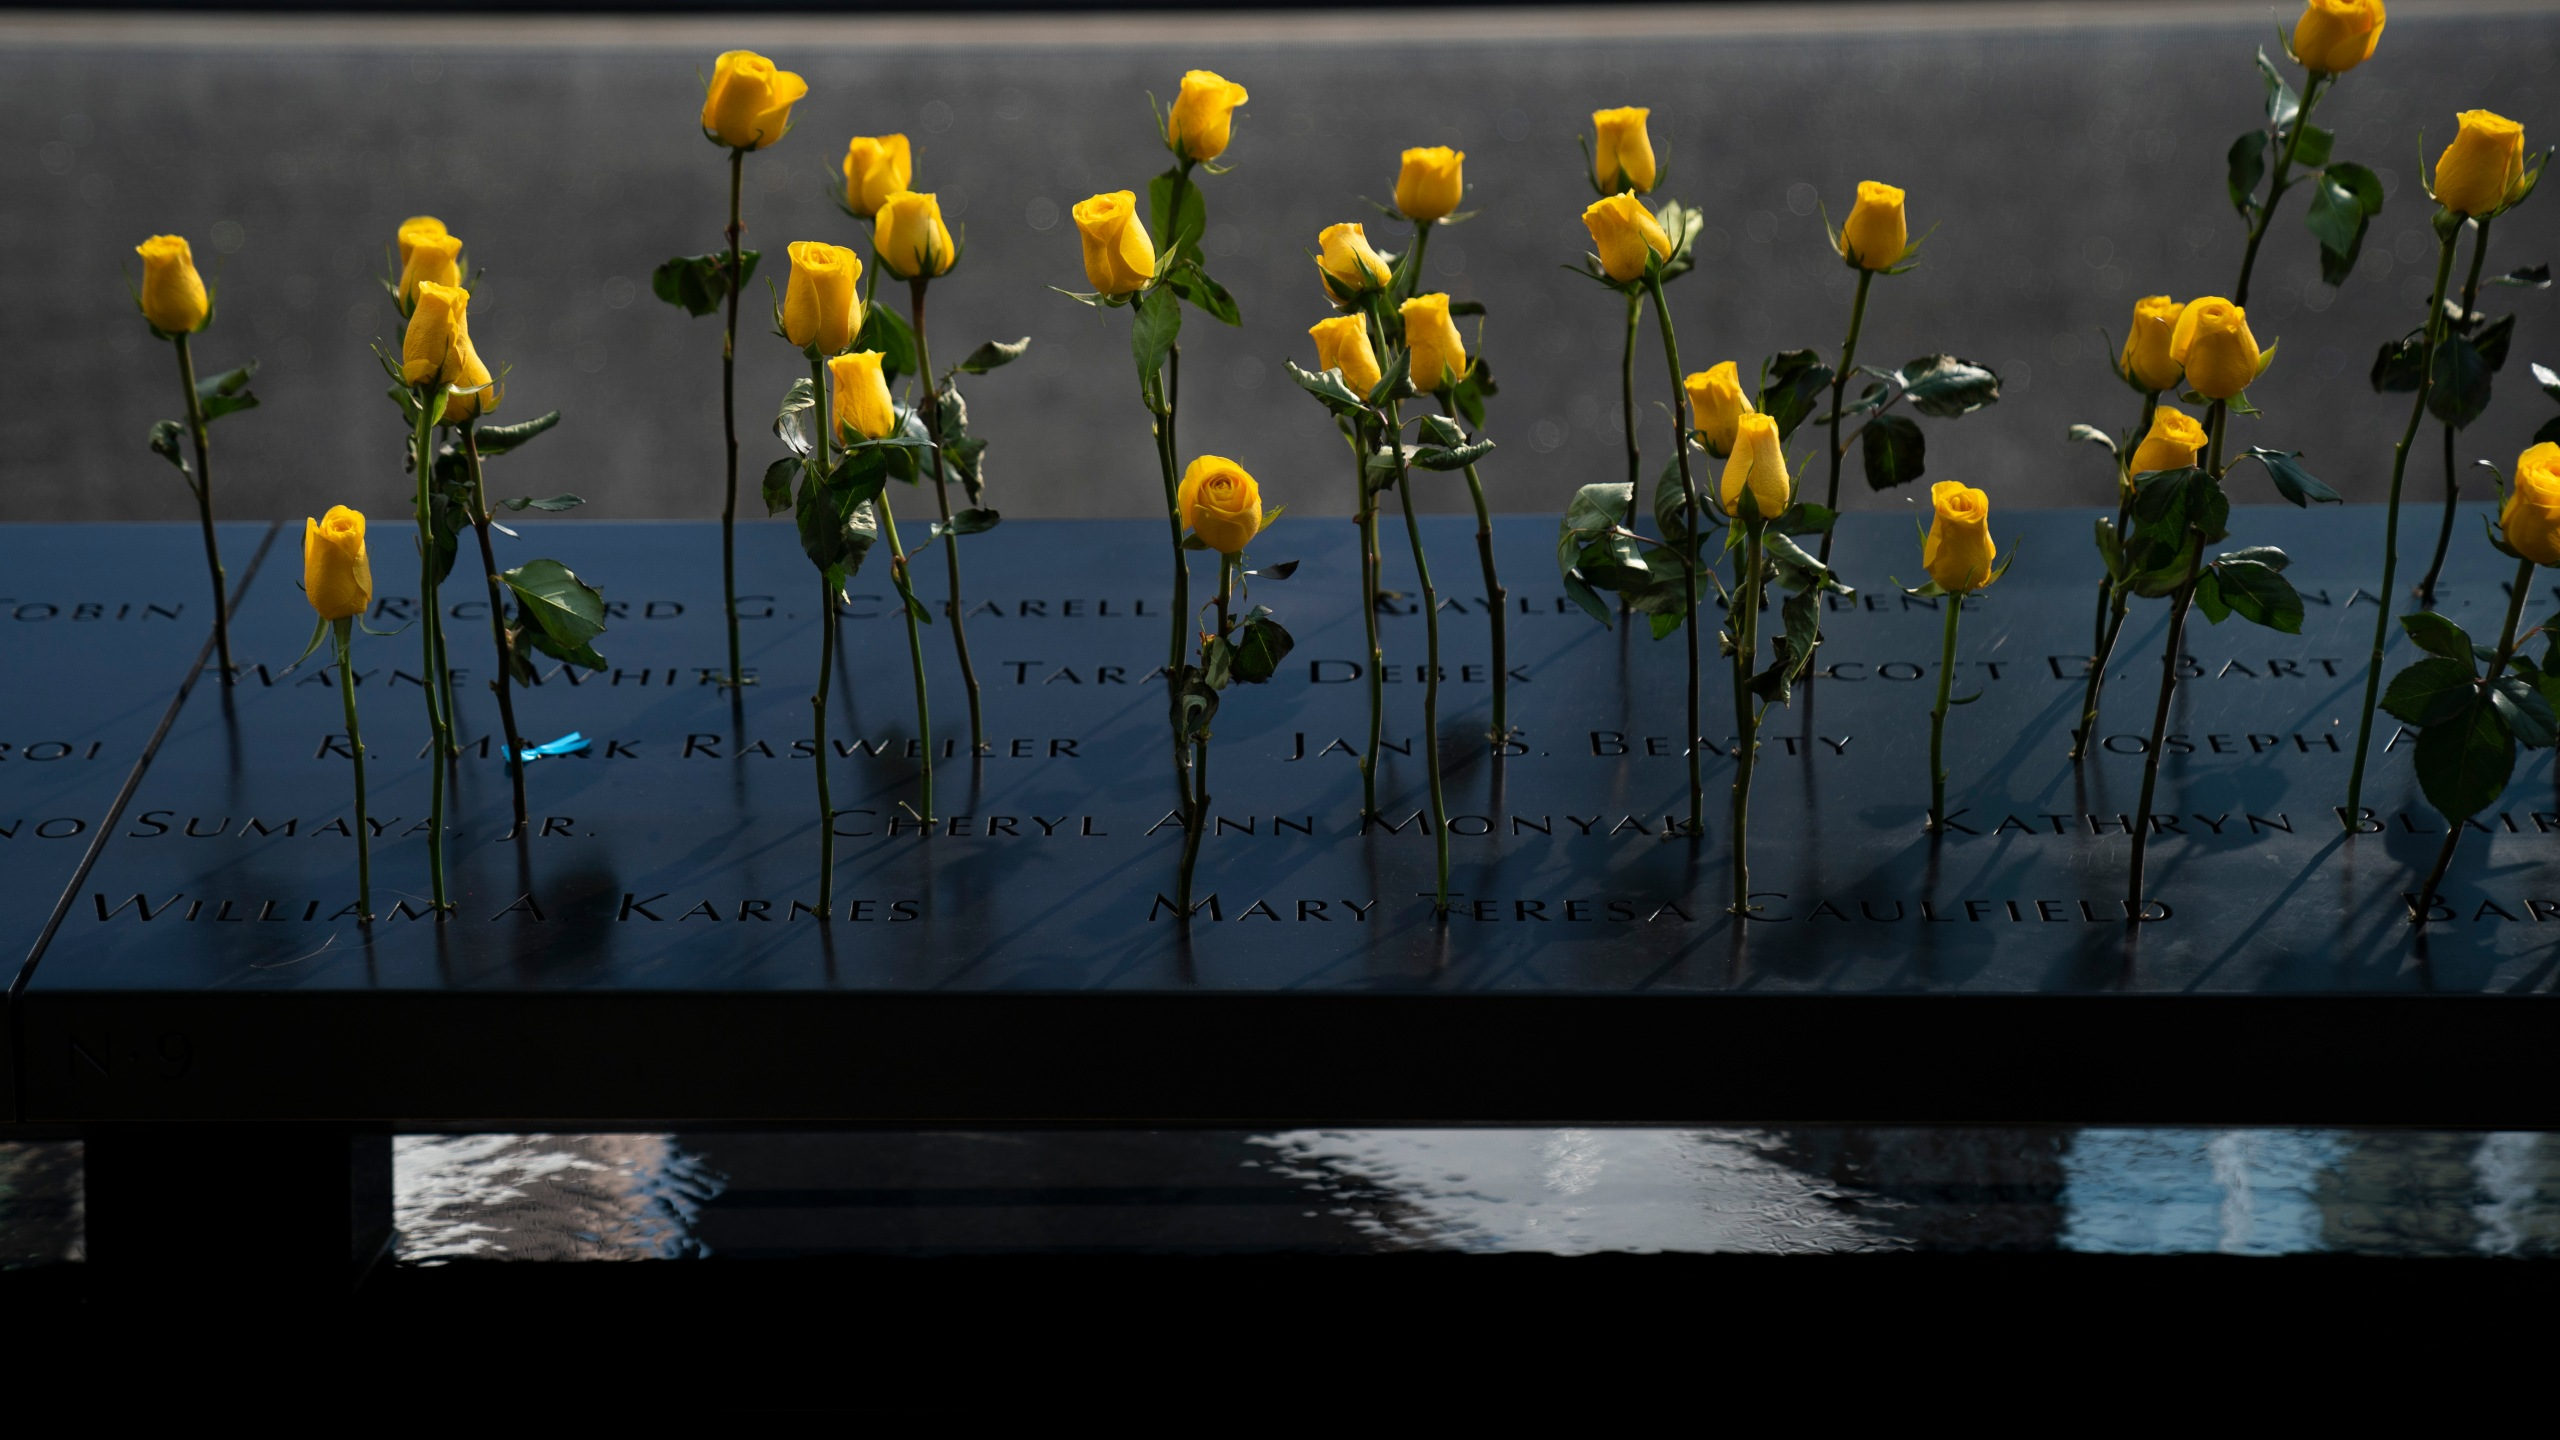 Flowers are left at the National September 11 Memorial on the 18th anniversary of the 9/11 attacks Sept. 11, 2019, in New York City. (Credit: Drew Angerer/Getty Images)